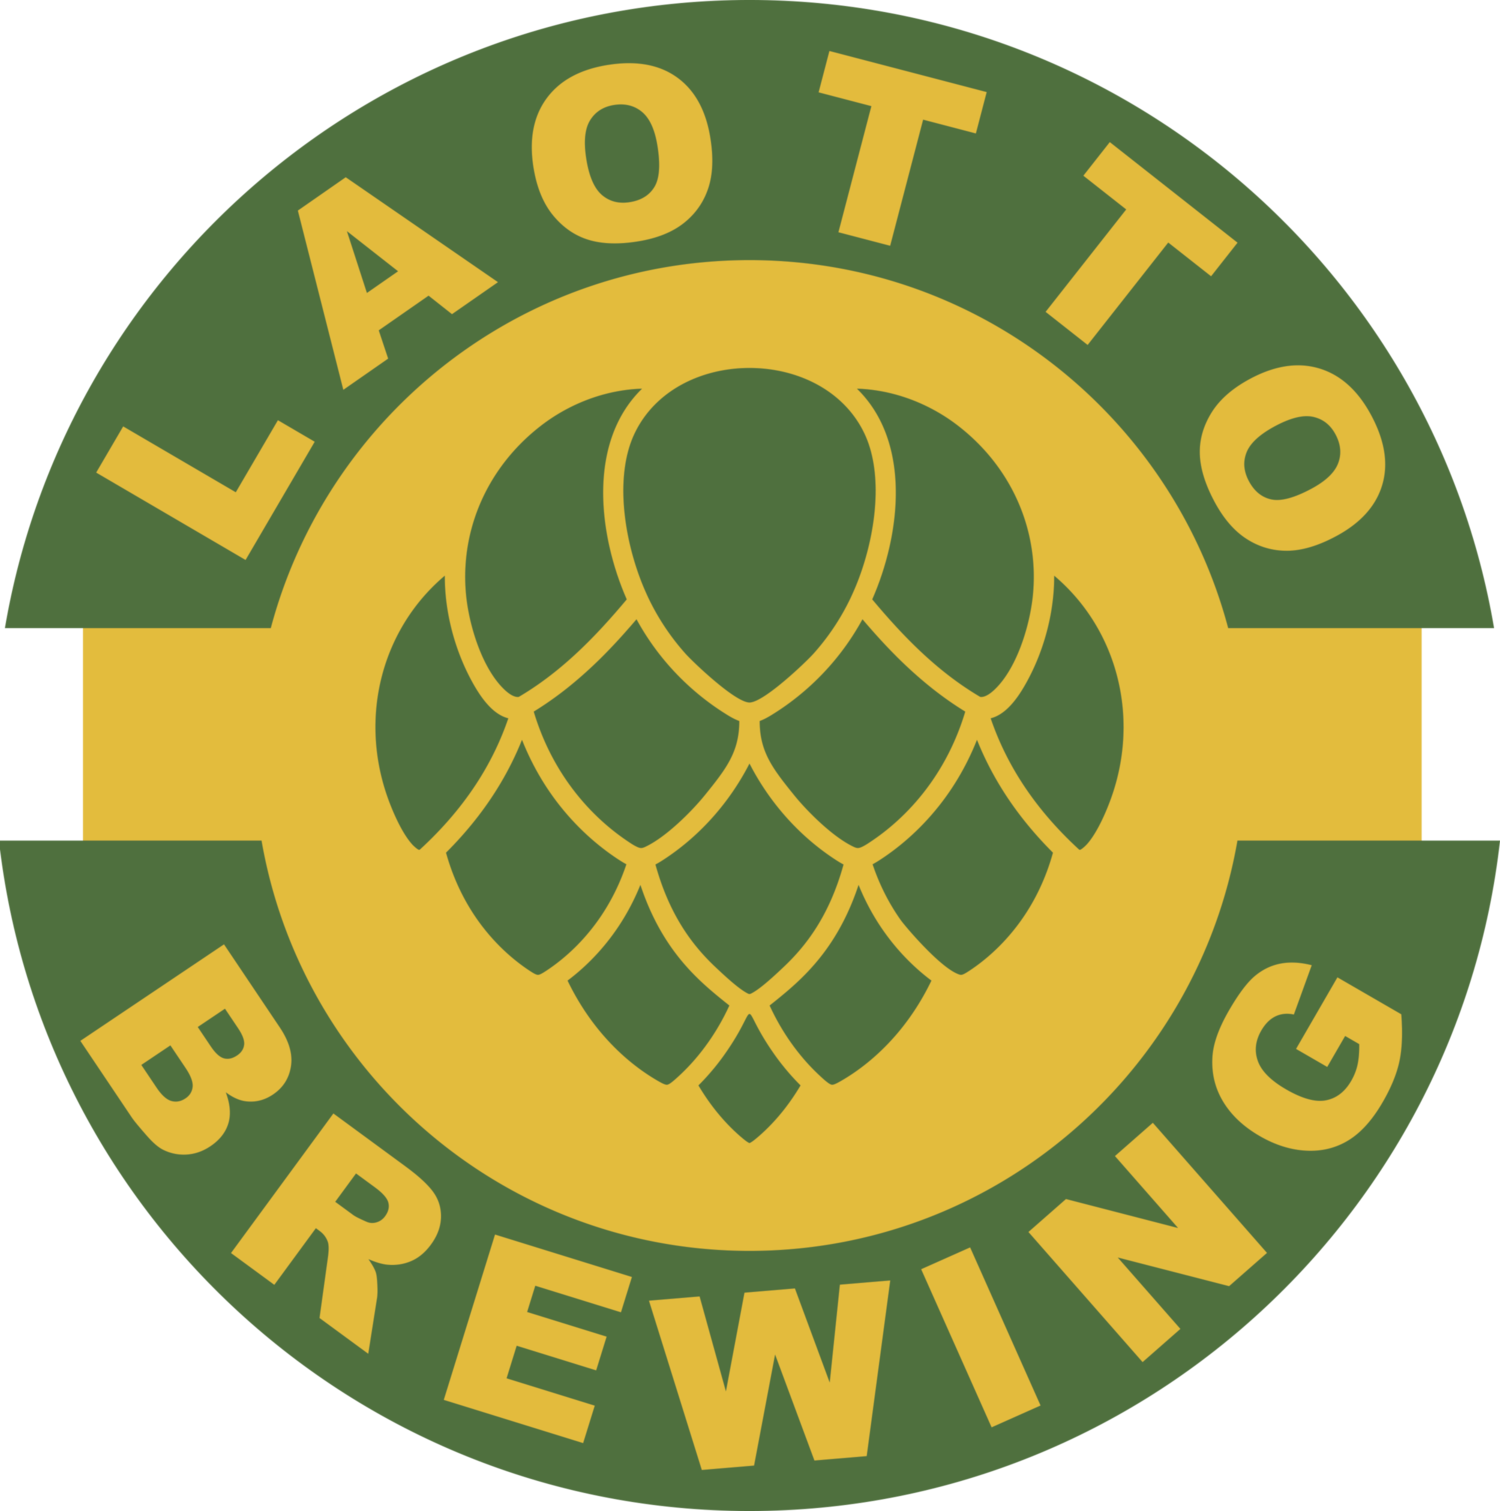 LaOtto Brewing Company